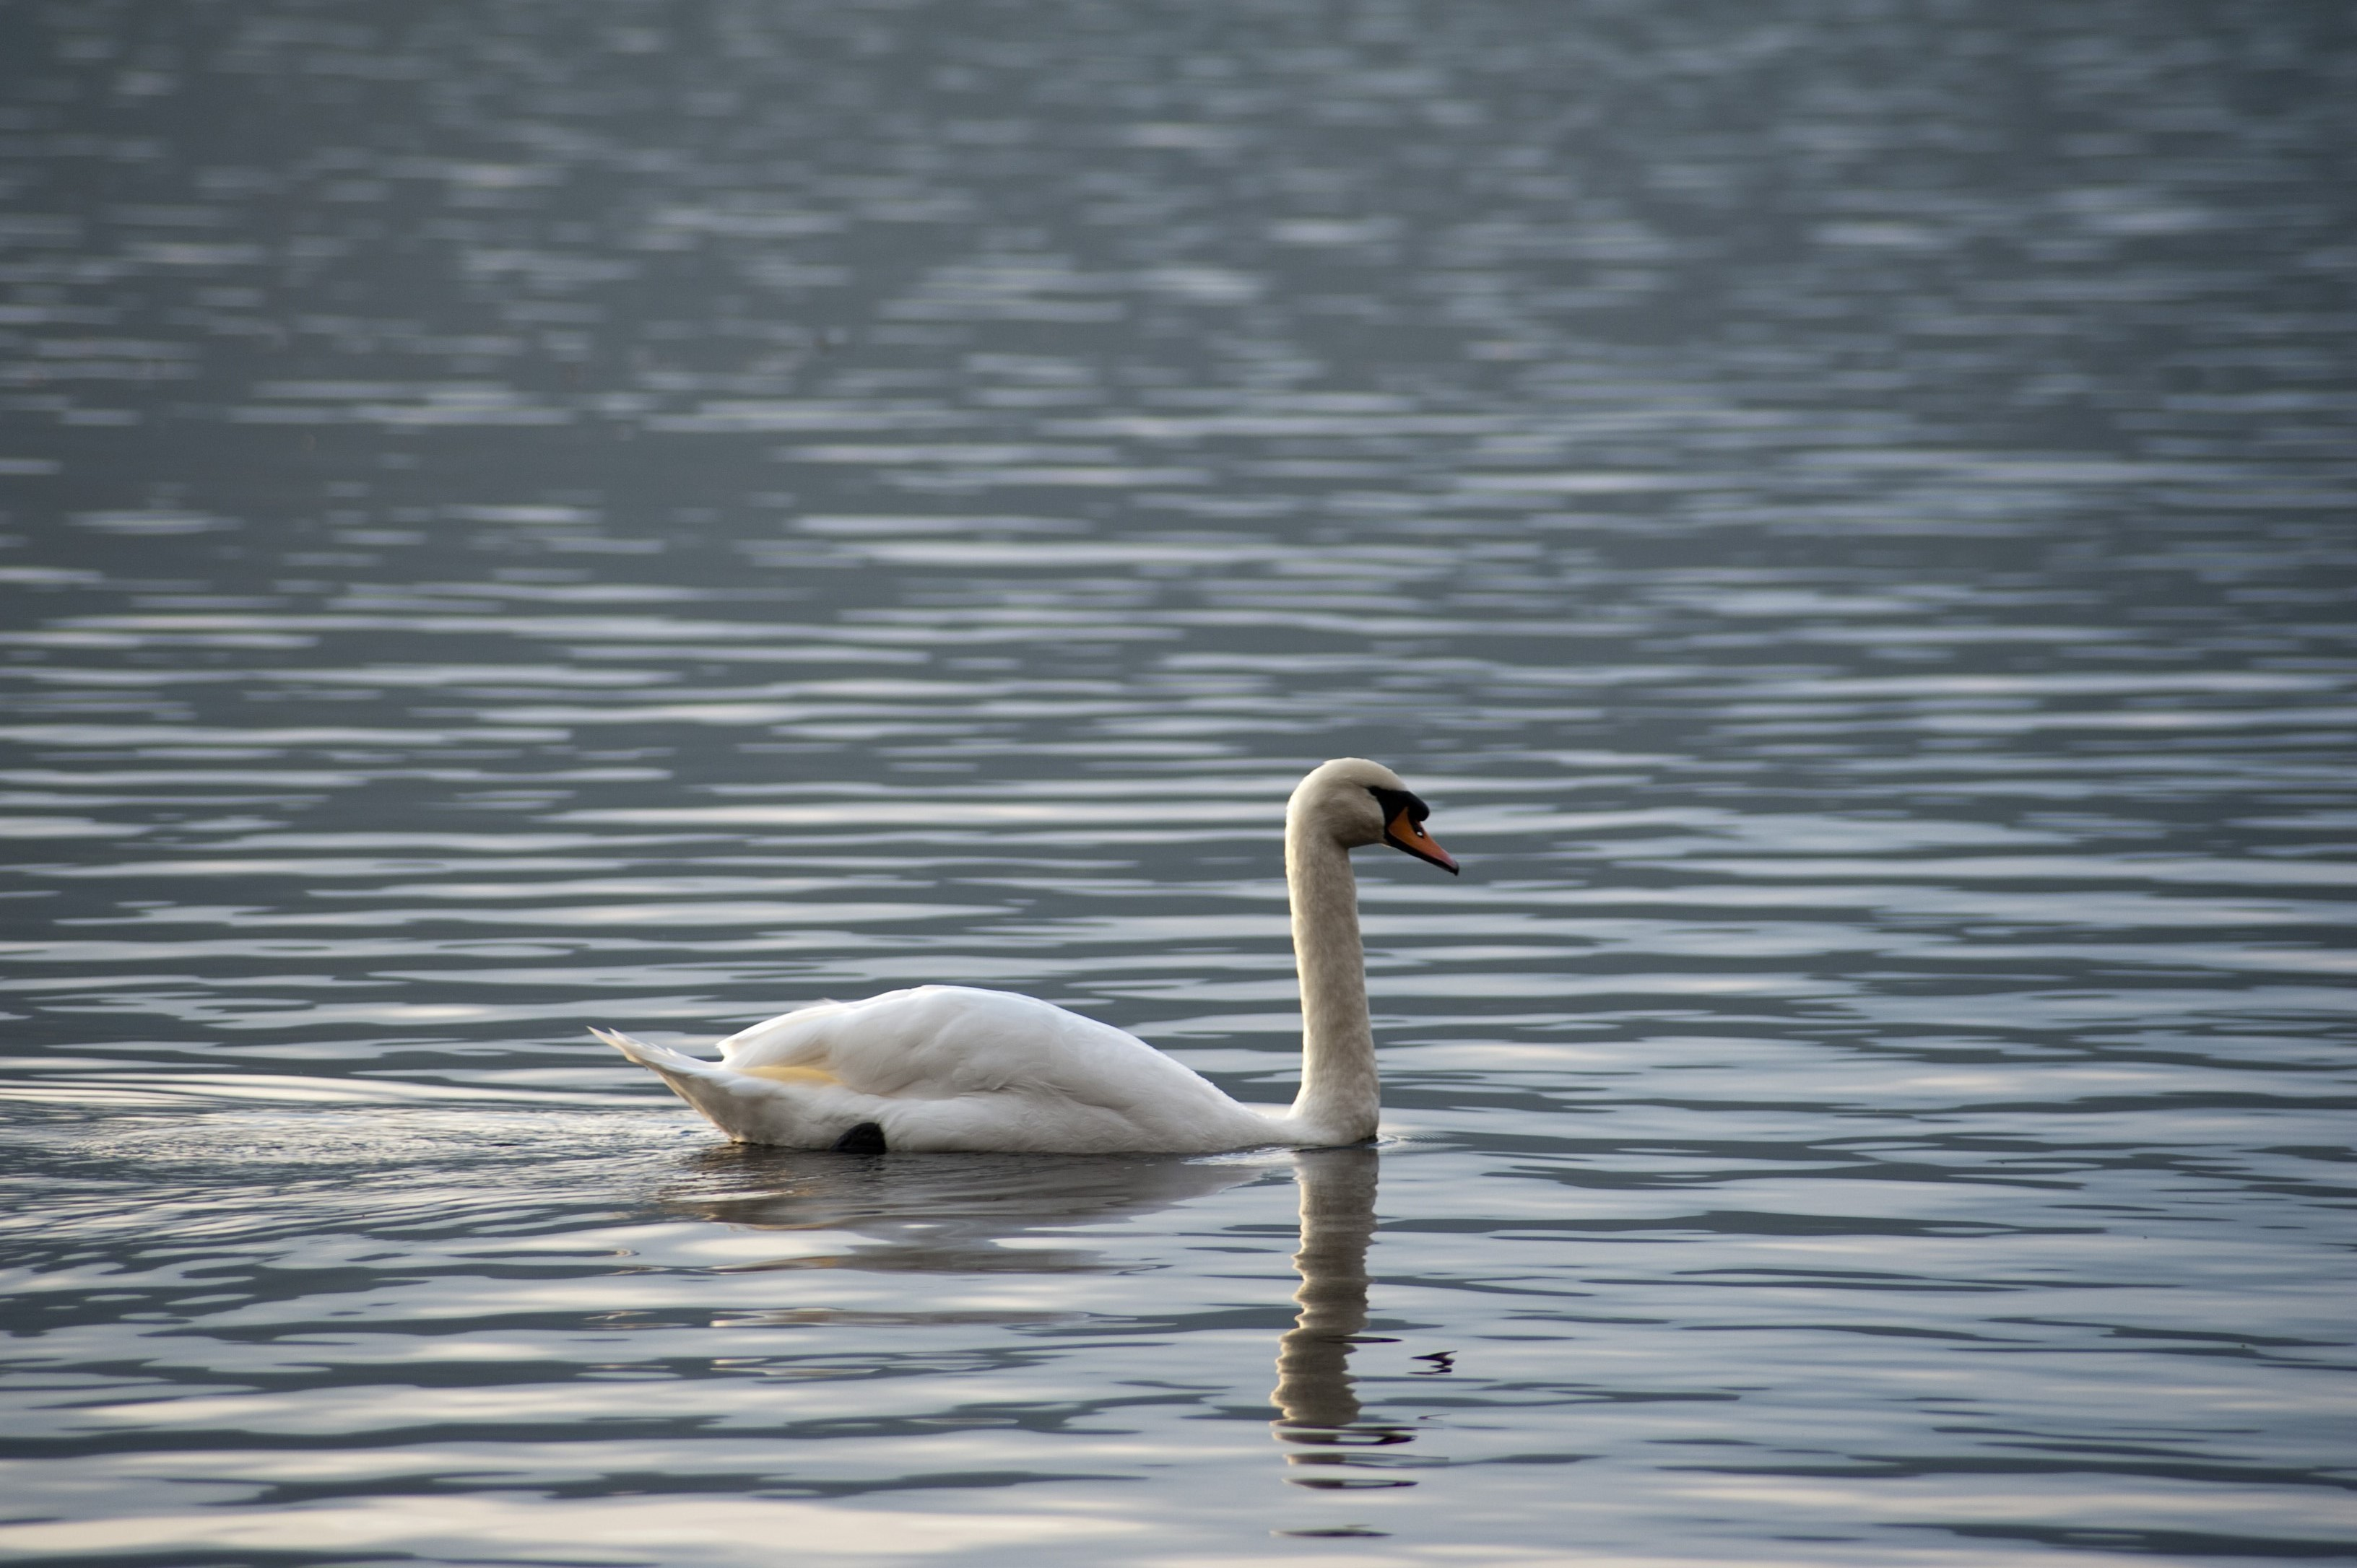 swan gliding on a calm lake surface